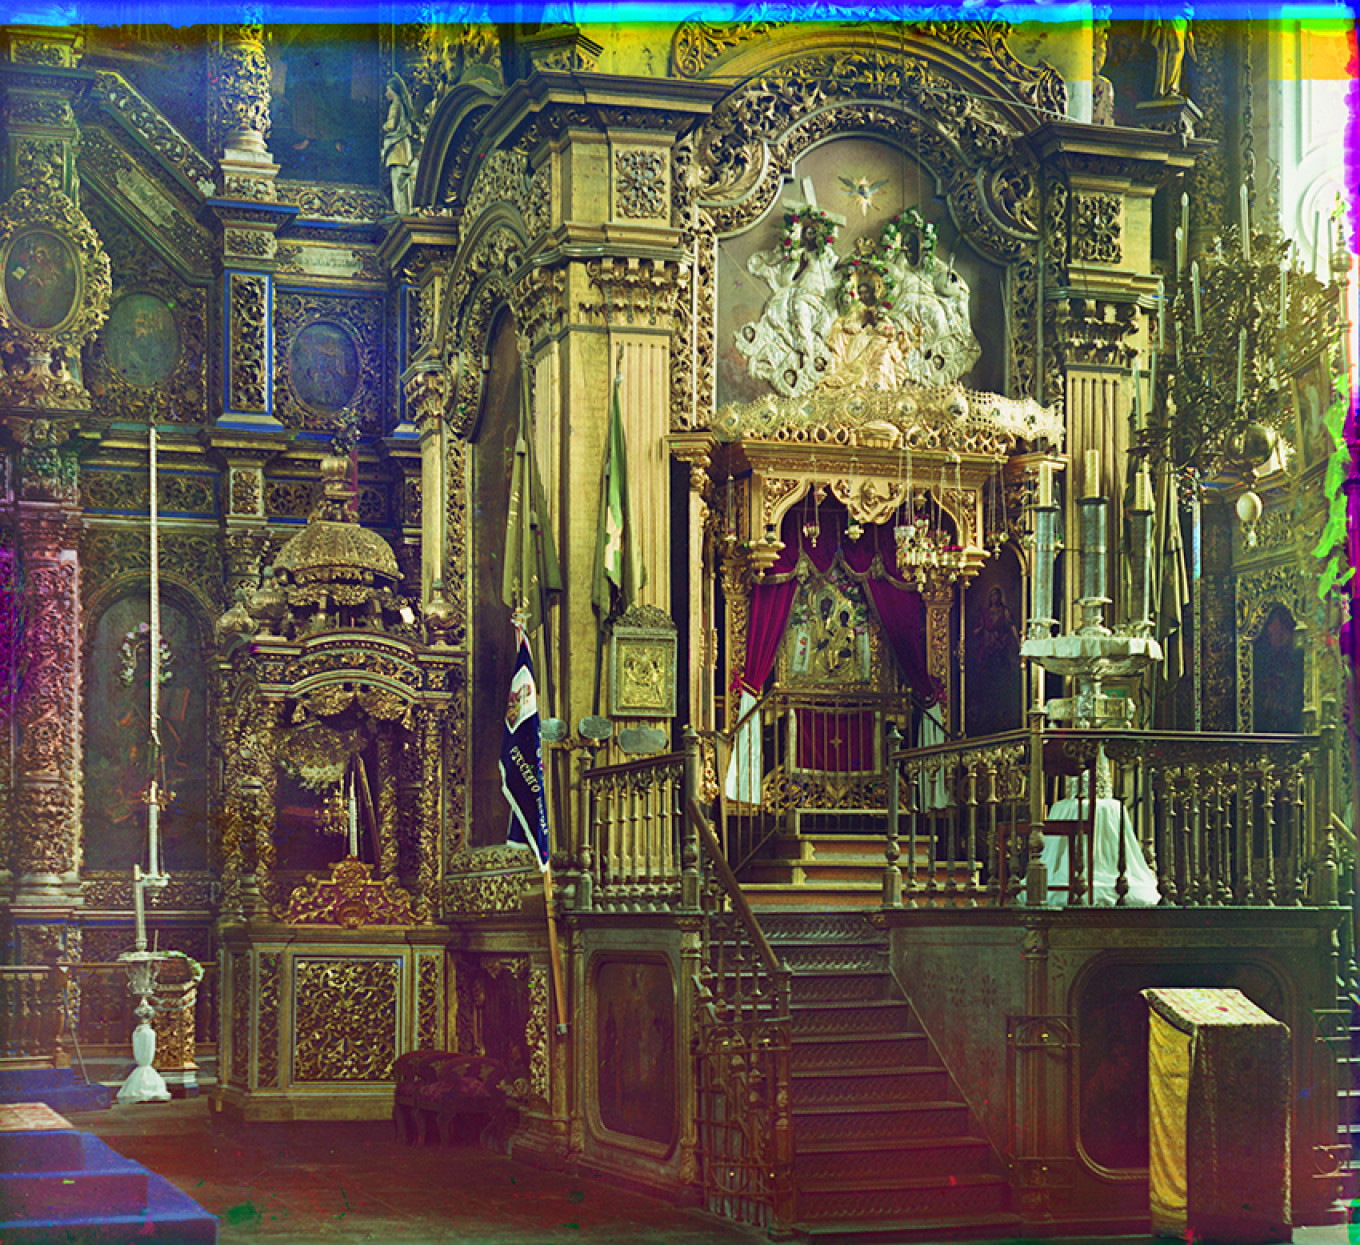 Cathedral of Dormition of the Virgin, Smolensk, Summer 1912, with the Icon of the Virgin, said to be painted by Apostle Luke, in the baldachin. S Prokudin-Gorsky 20413